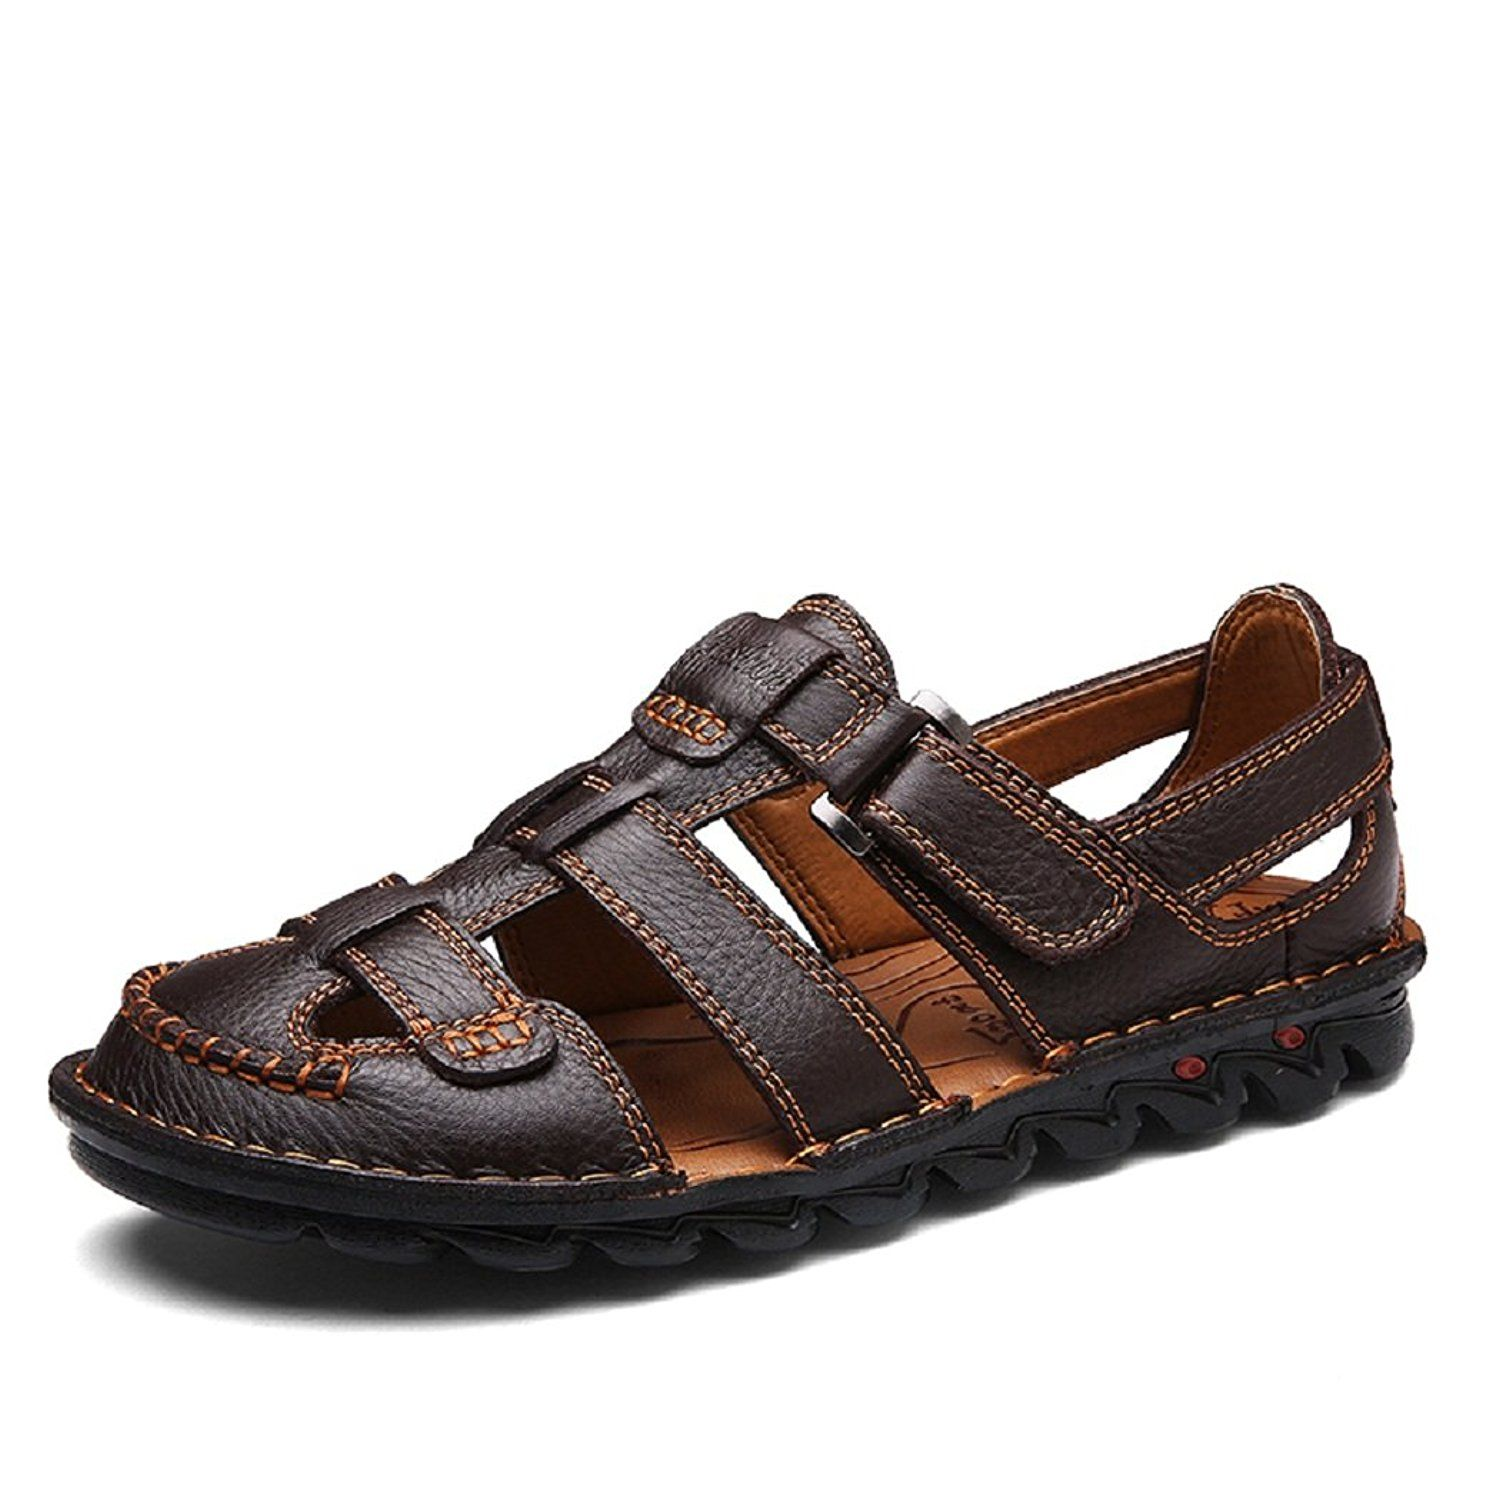 24602fc69e22 Men s Casual Outdoor Strap Summer Fisherman Leather Sandals Brown 43 ...